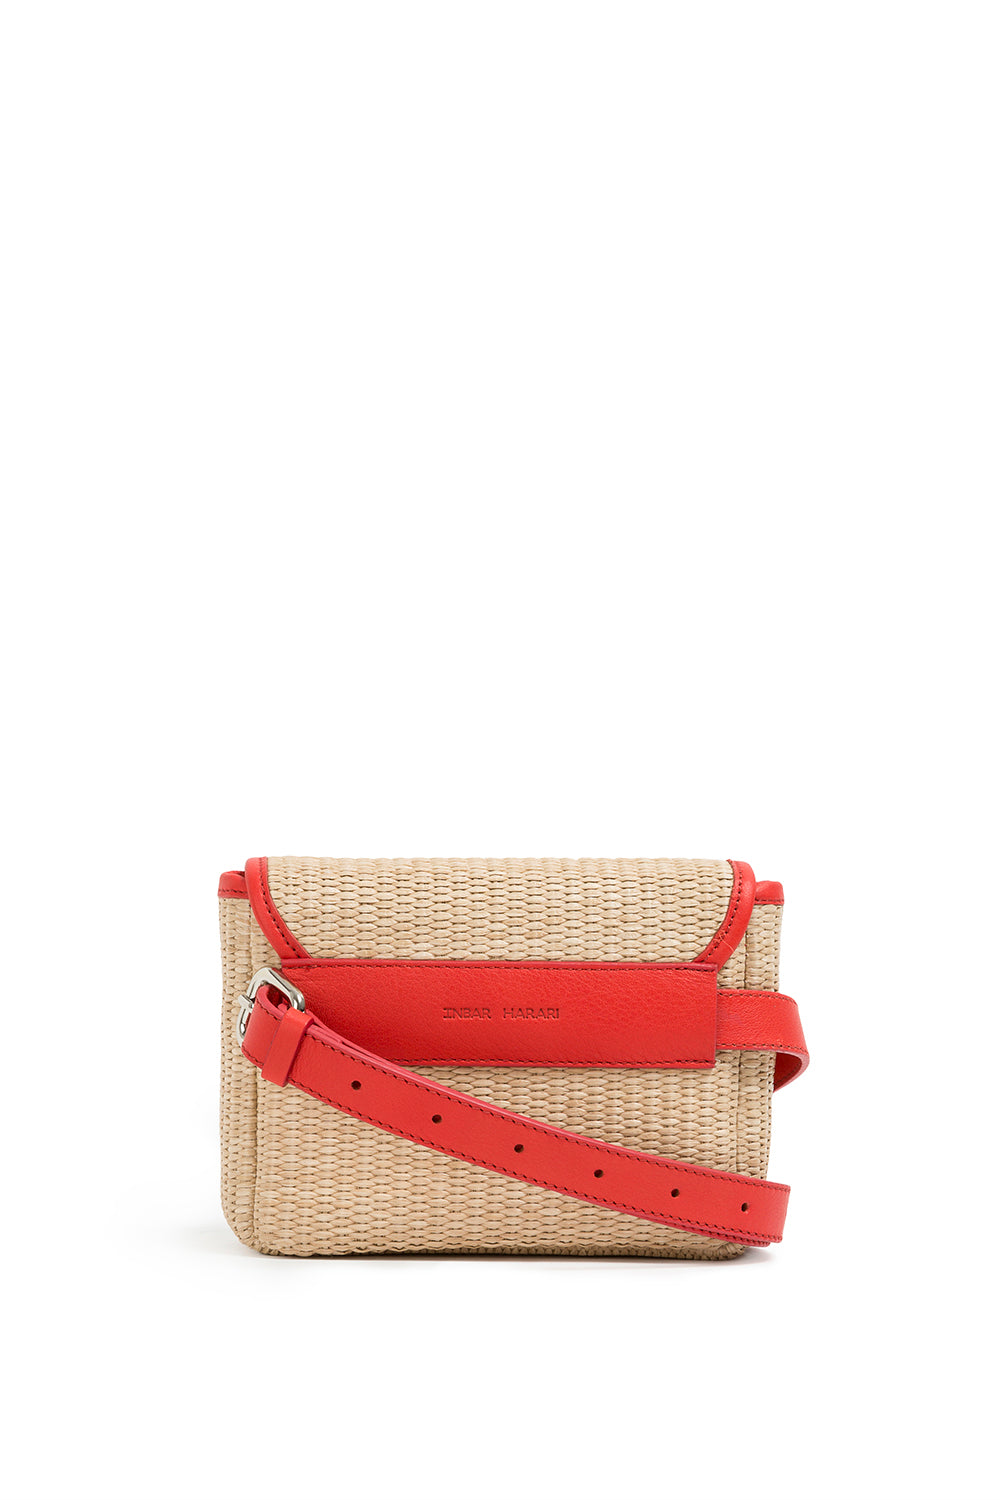 inbar harari Barcelona leather bag raffia red